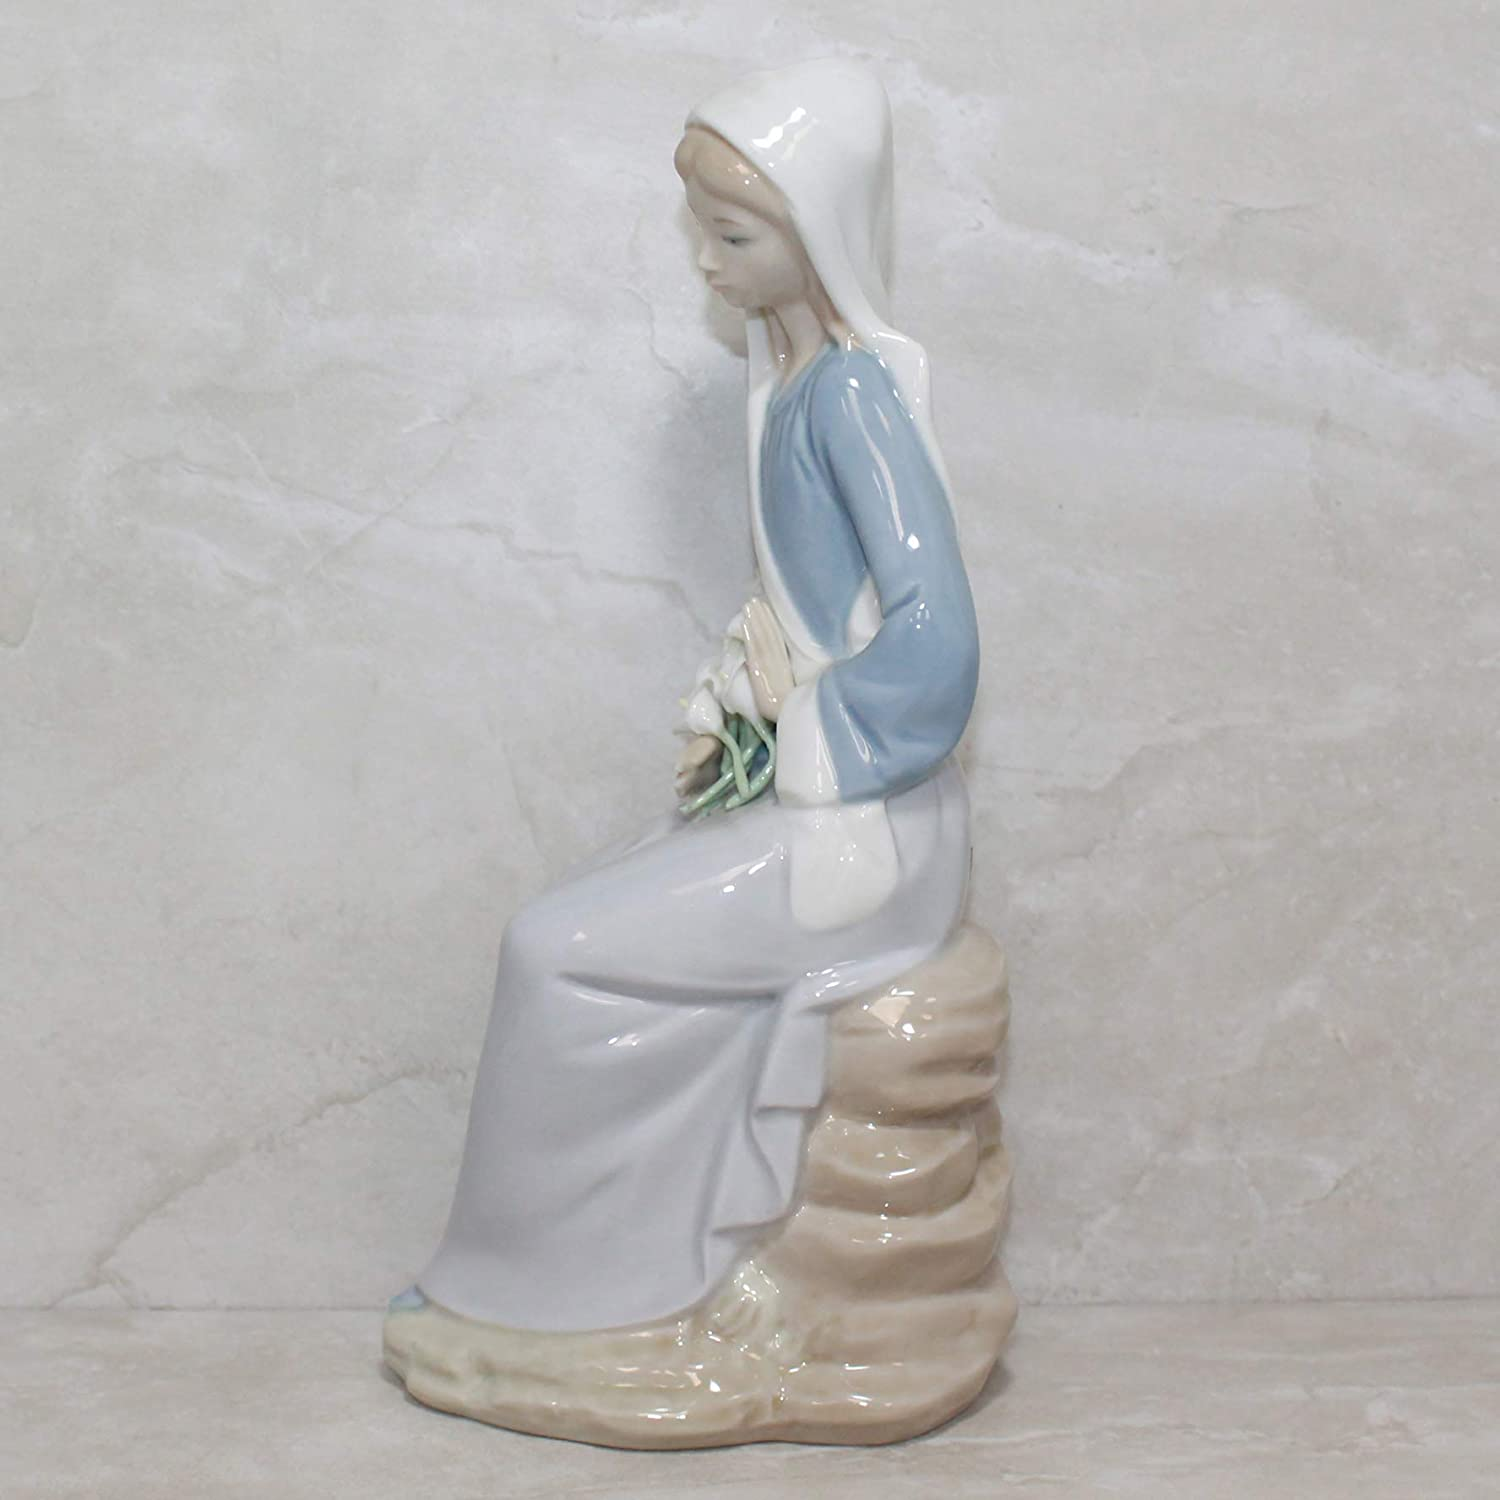 Lladro Girl with Lilies Sitting Collectible Figurine 01004972 Retired Glazed Finish